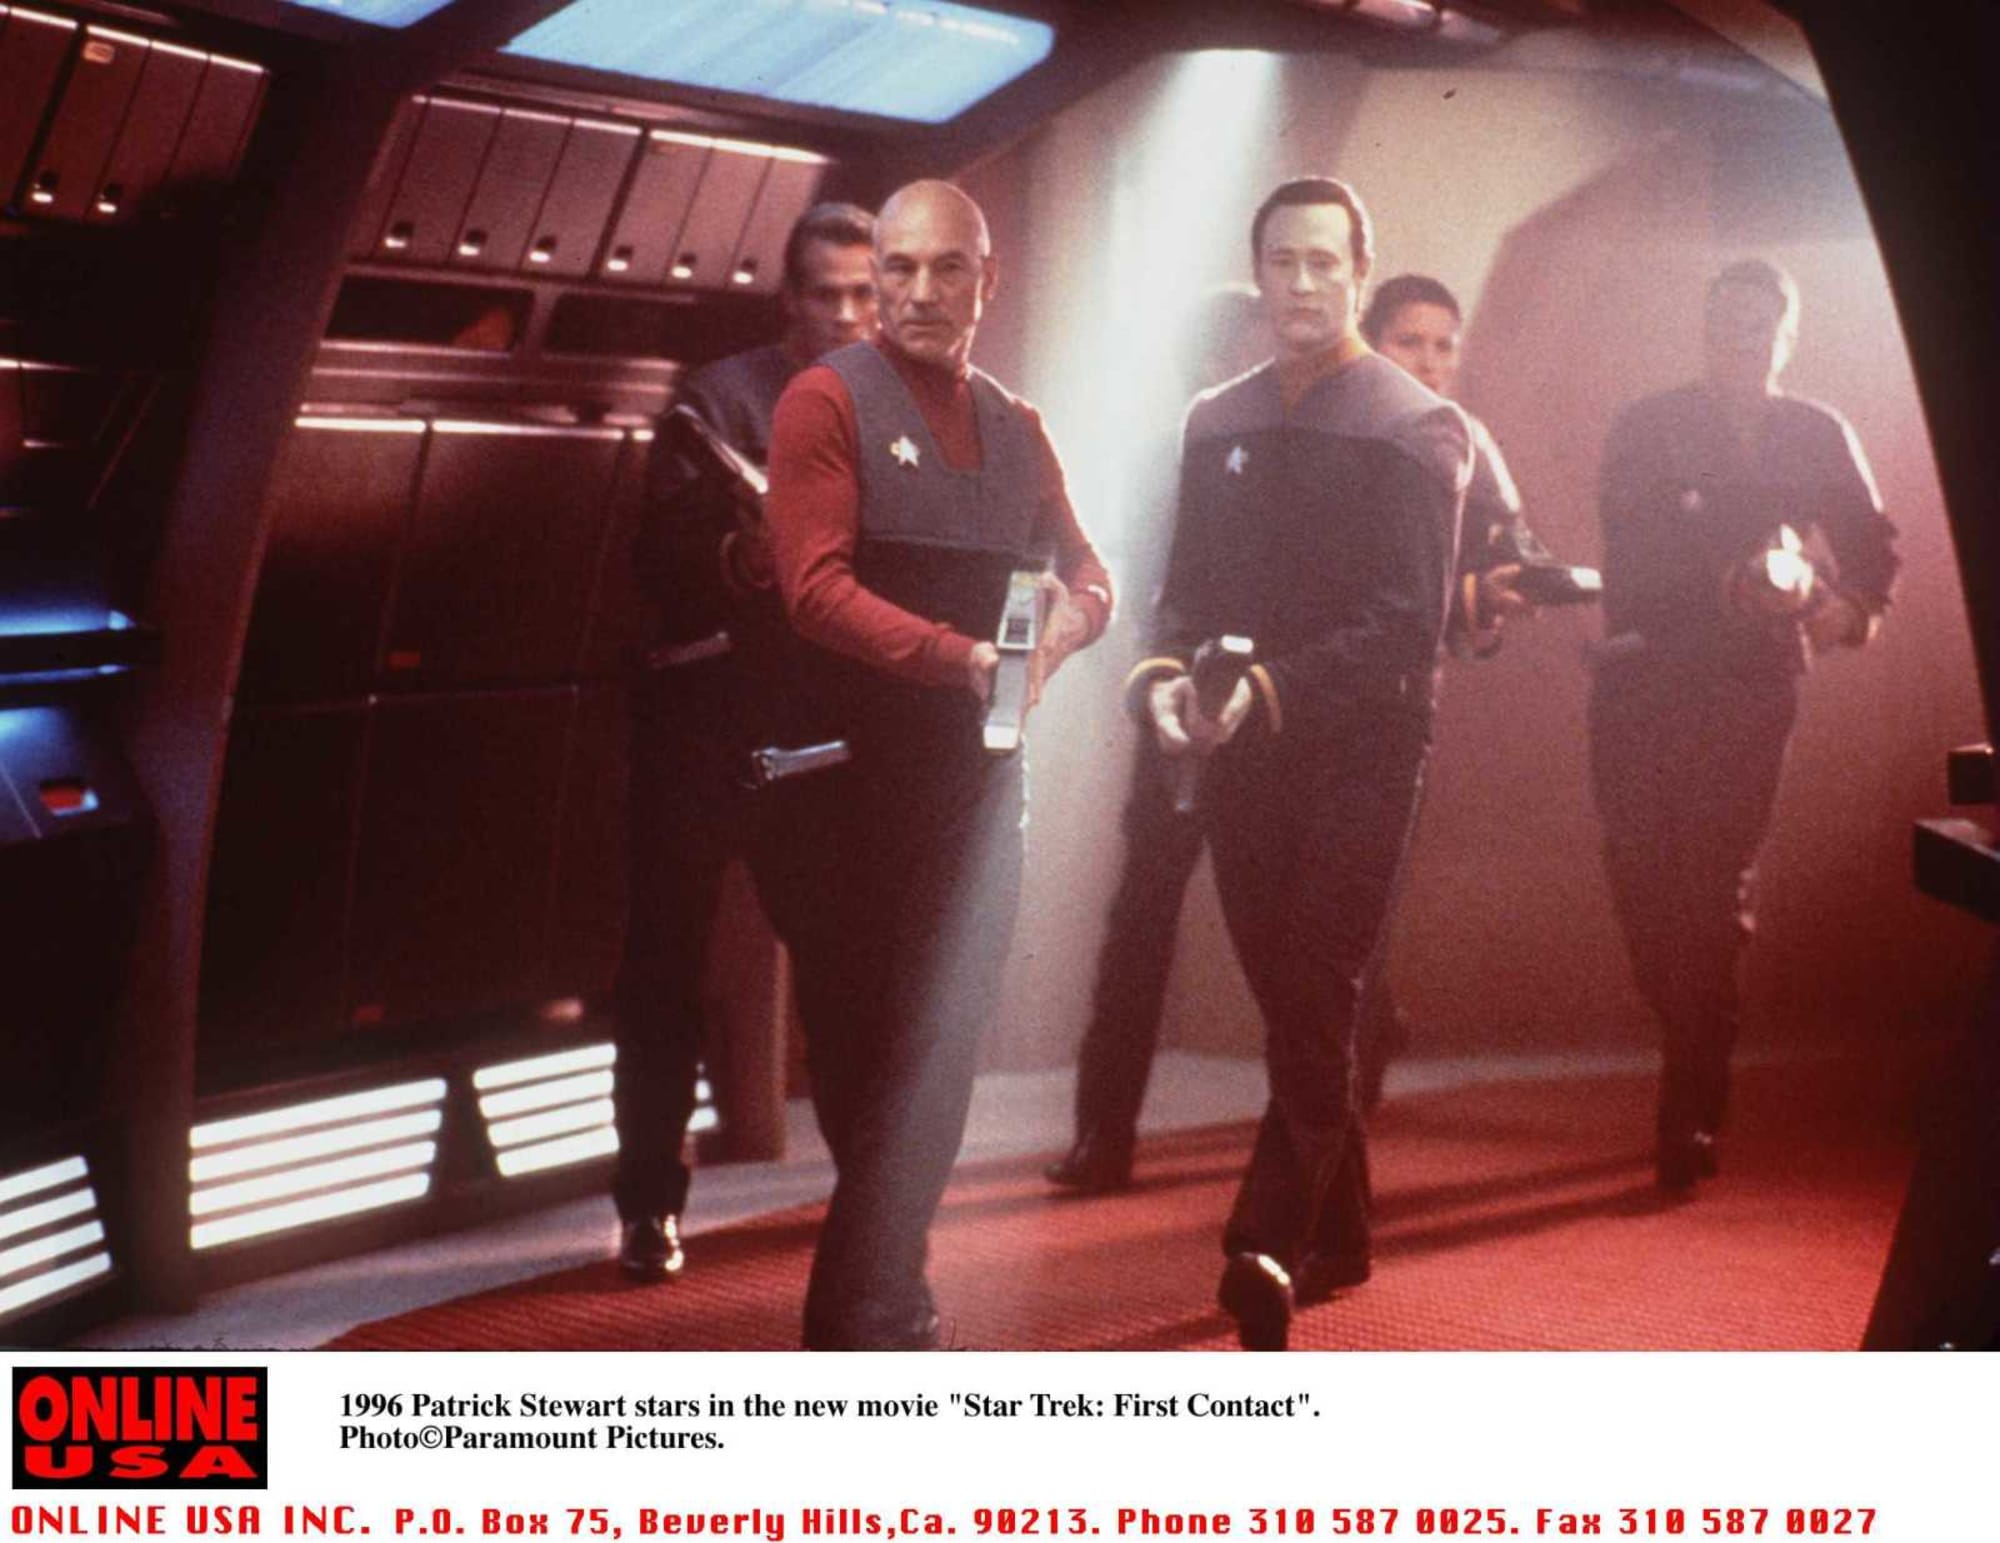 Star Trek: First Contact may very well be the best of the Trek films